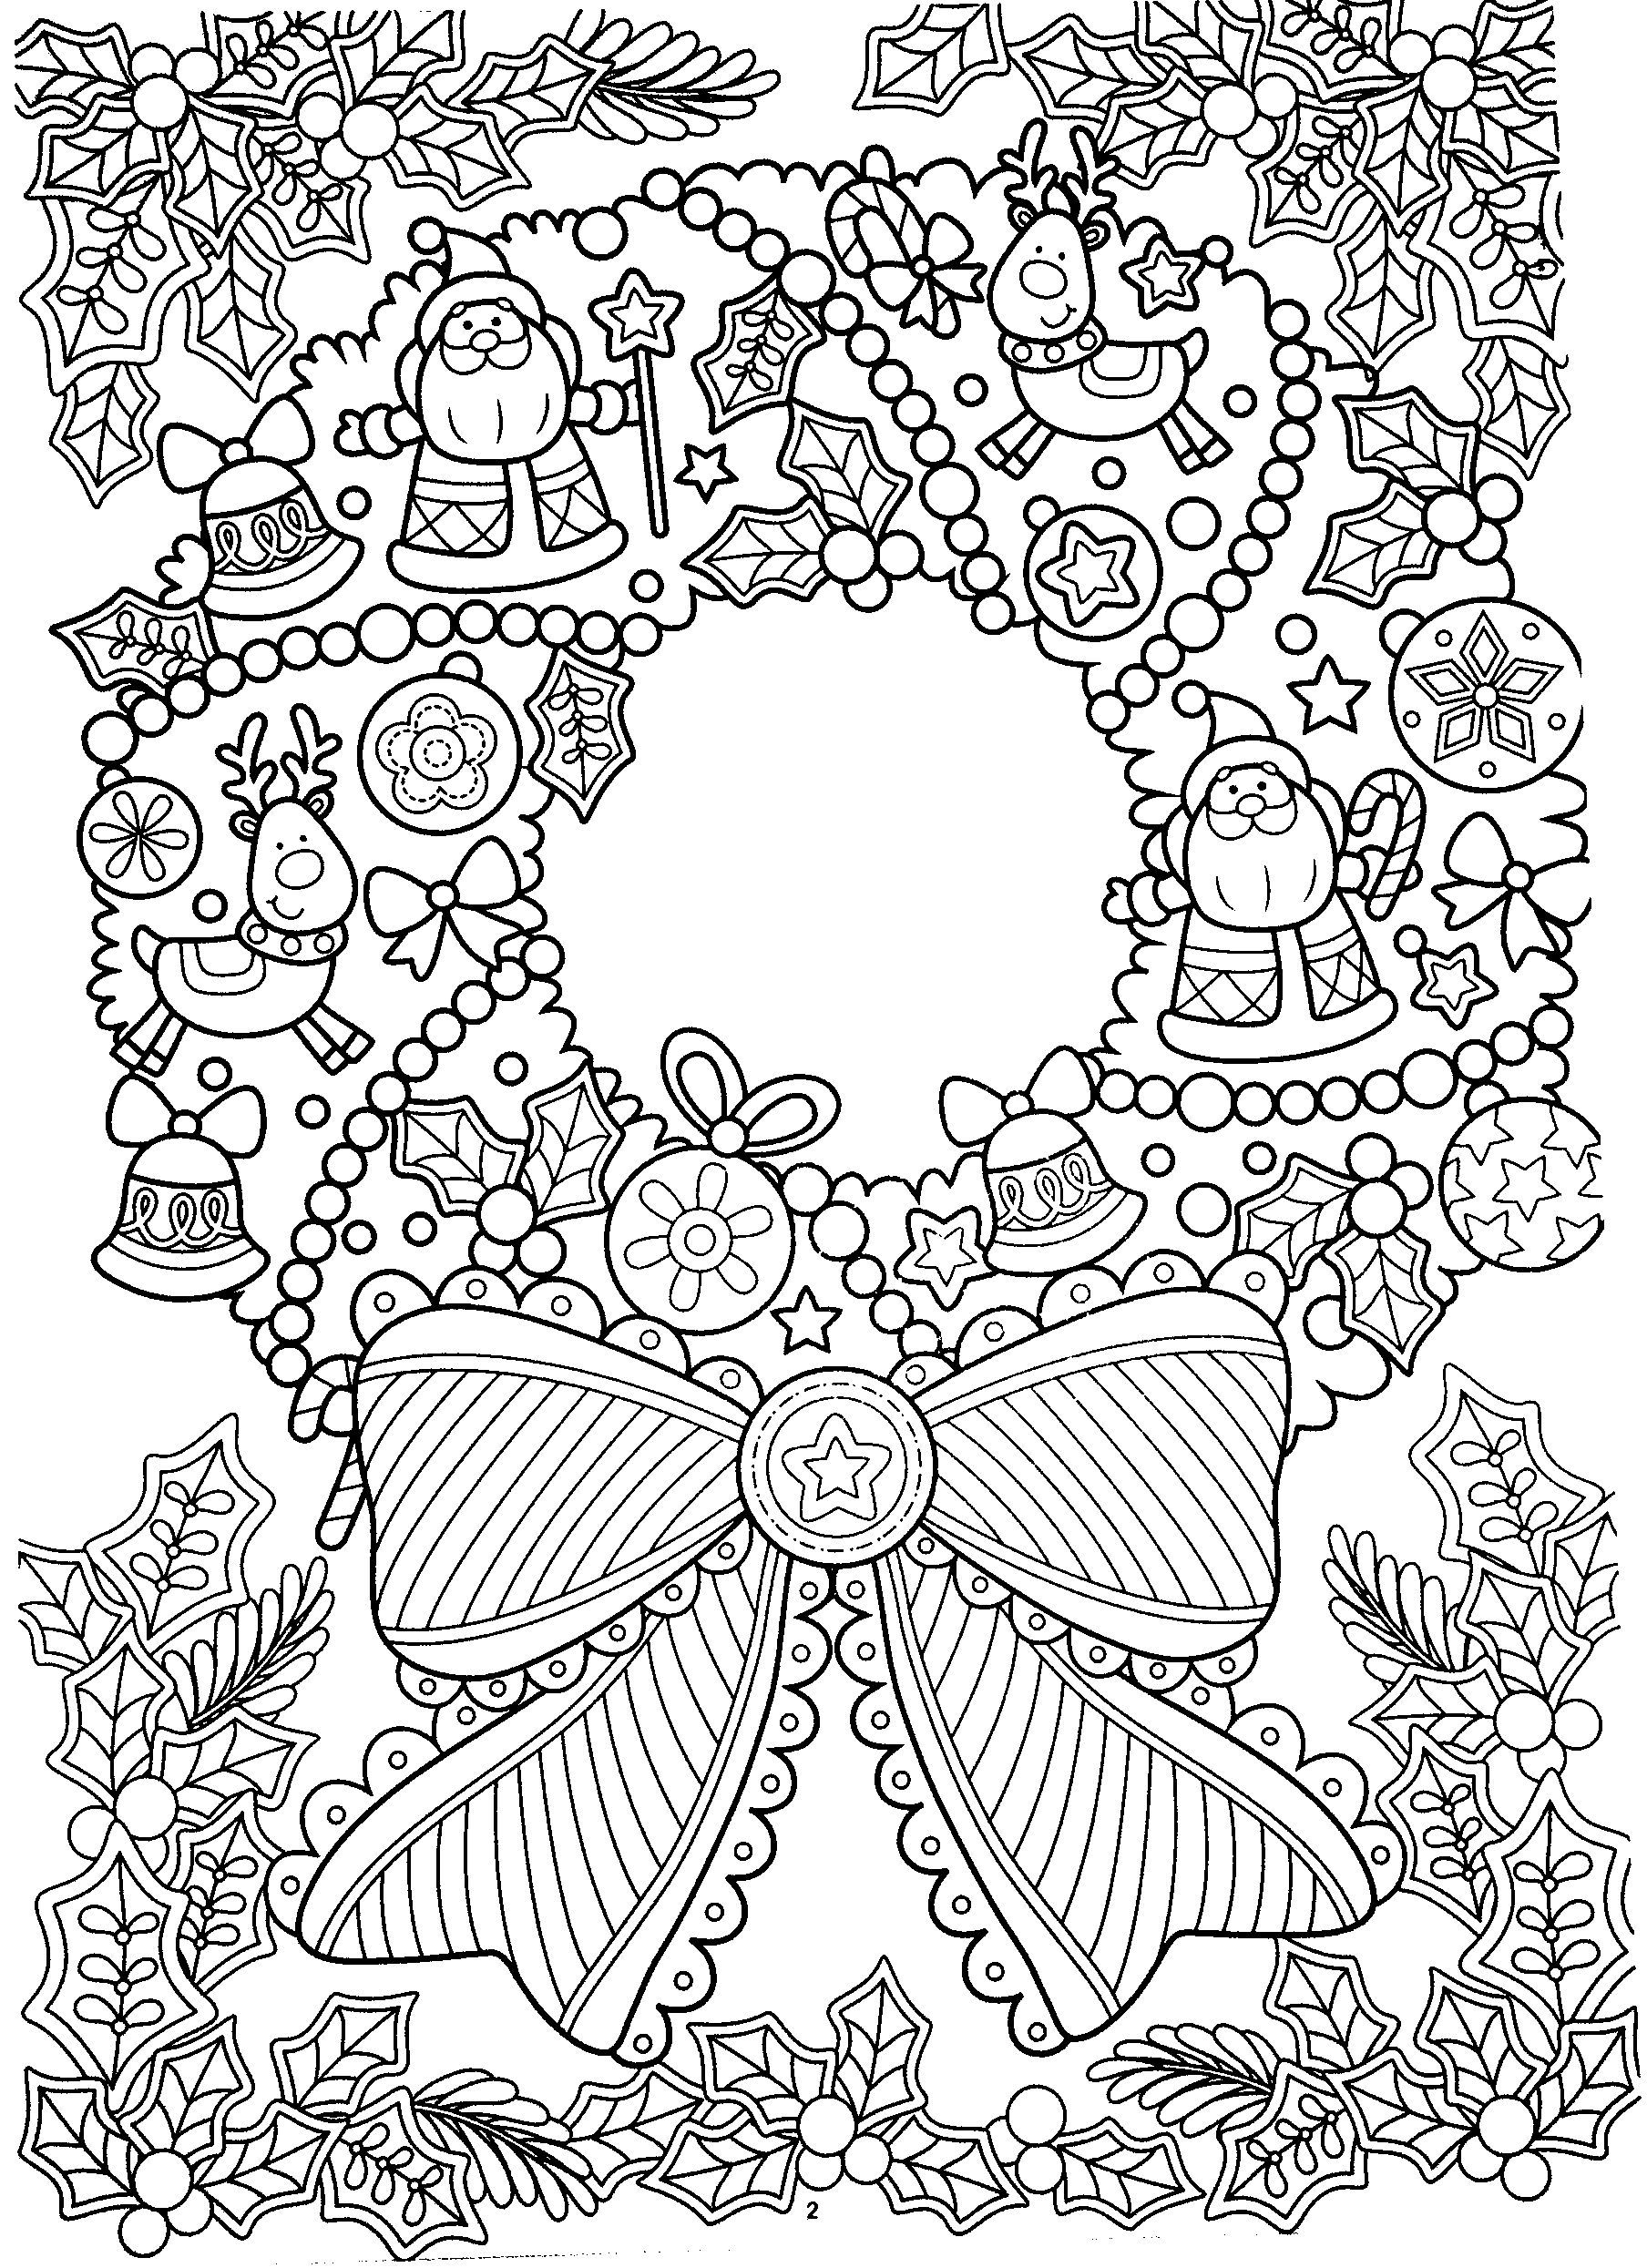 New Year Coloring Pages, Christmas Coloring Pages | Coloring